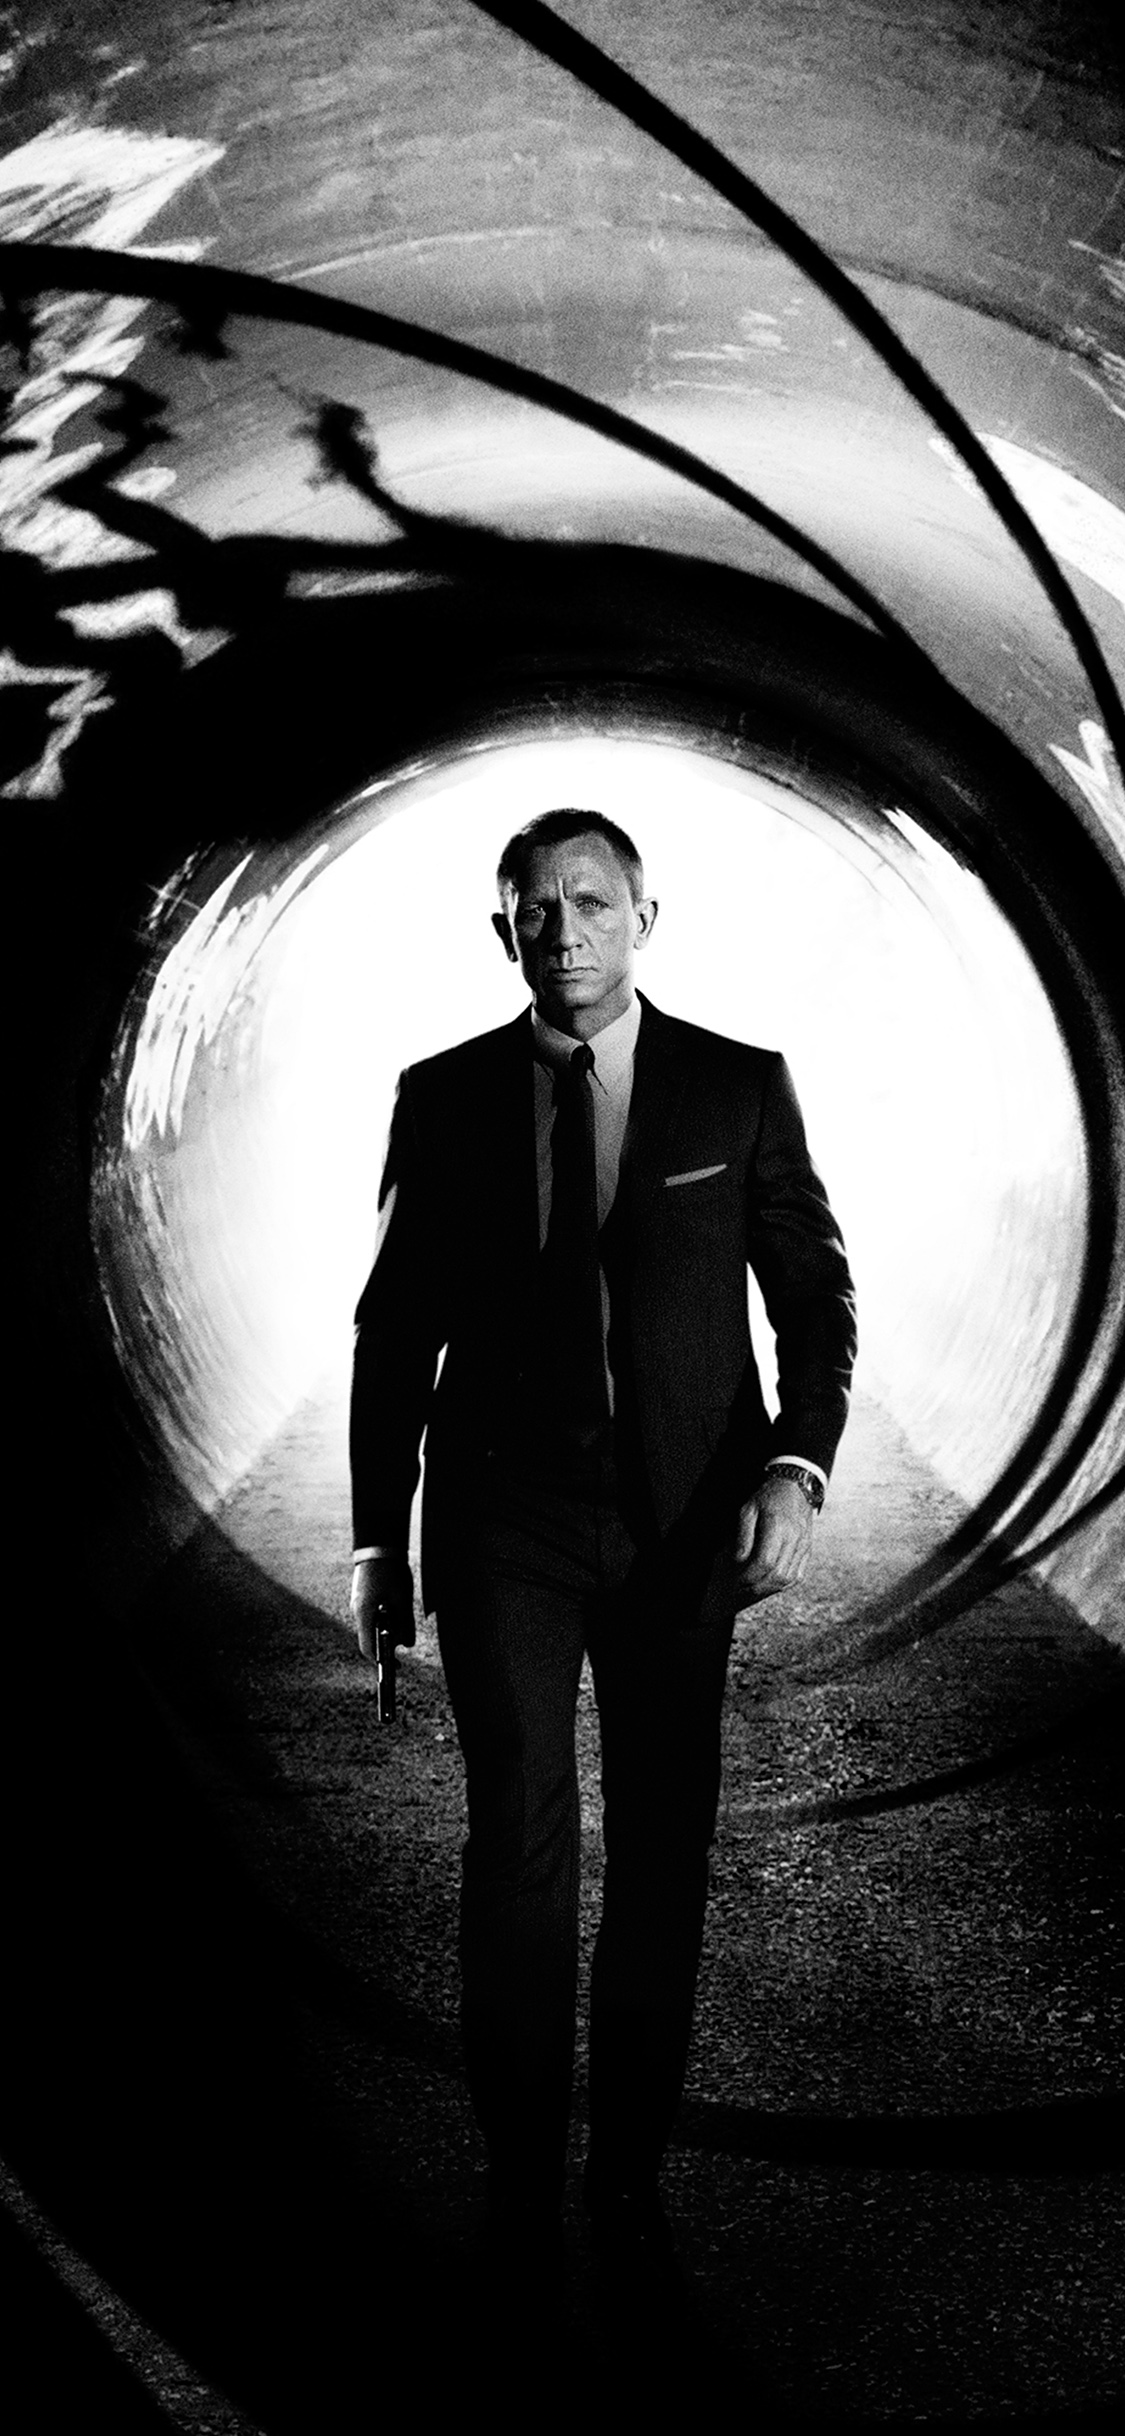 hg70-james-bond-007-skyfall-film-poster - Papers.co